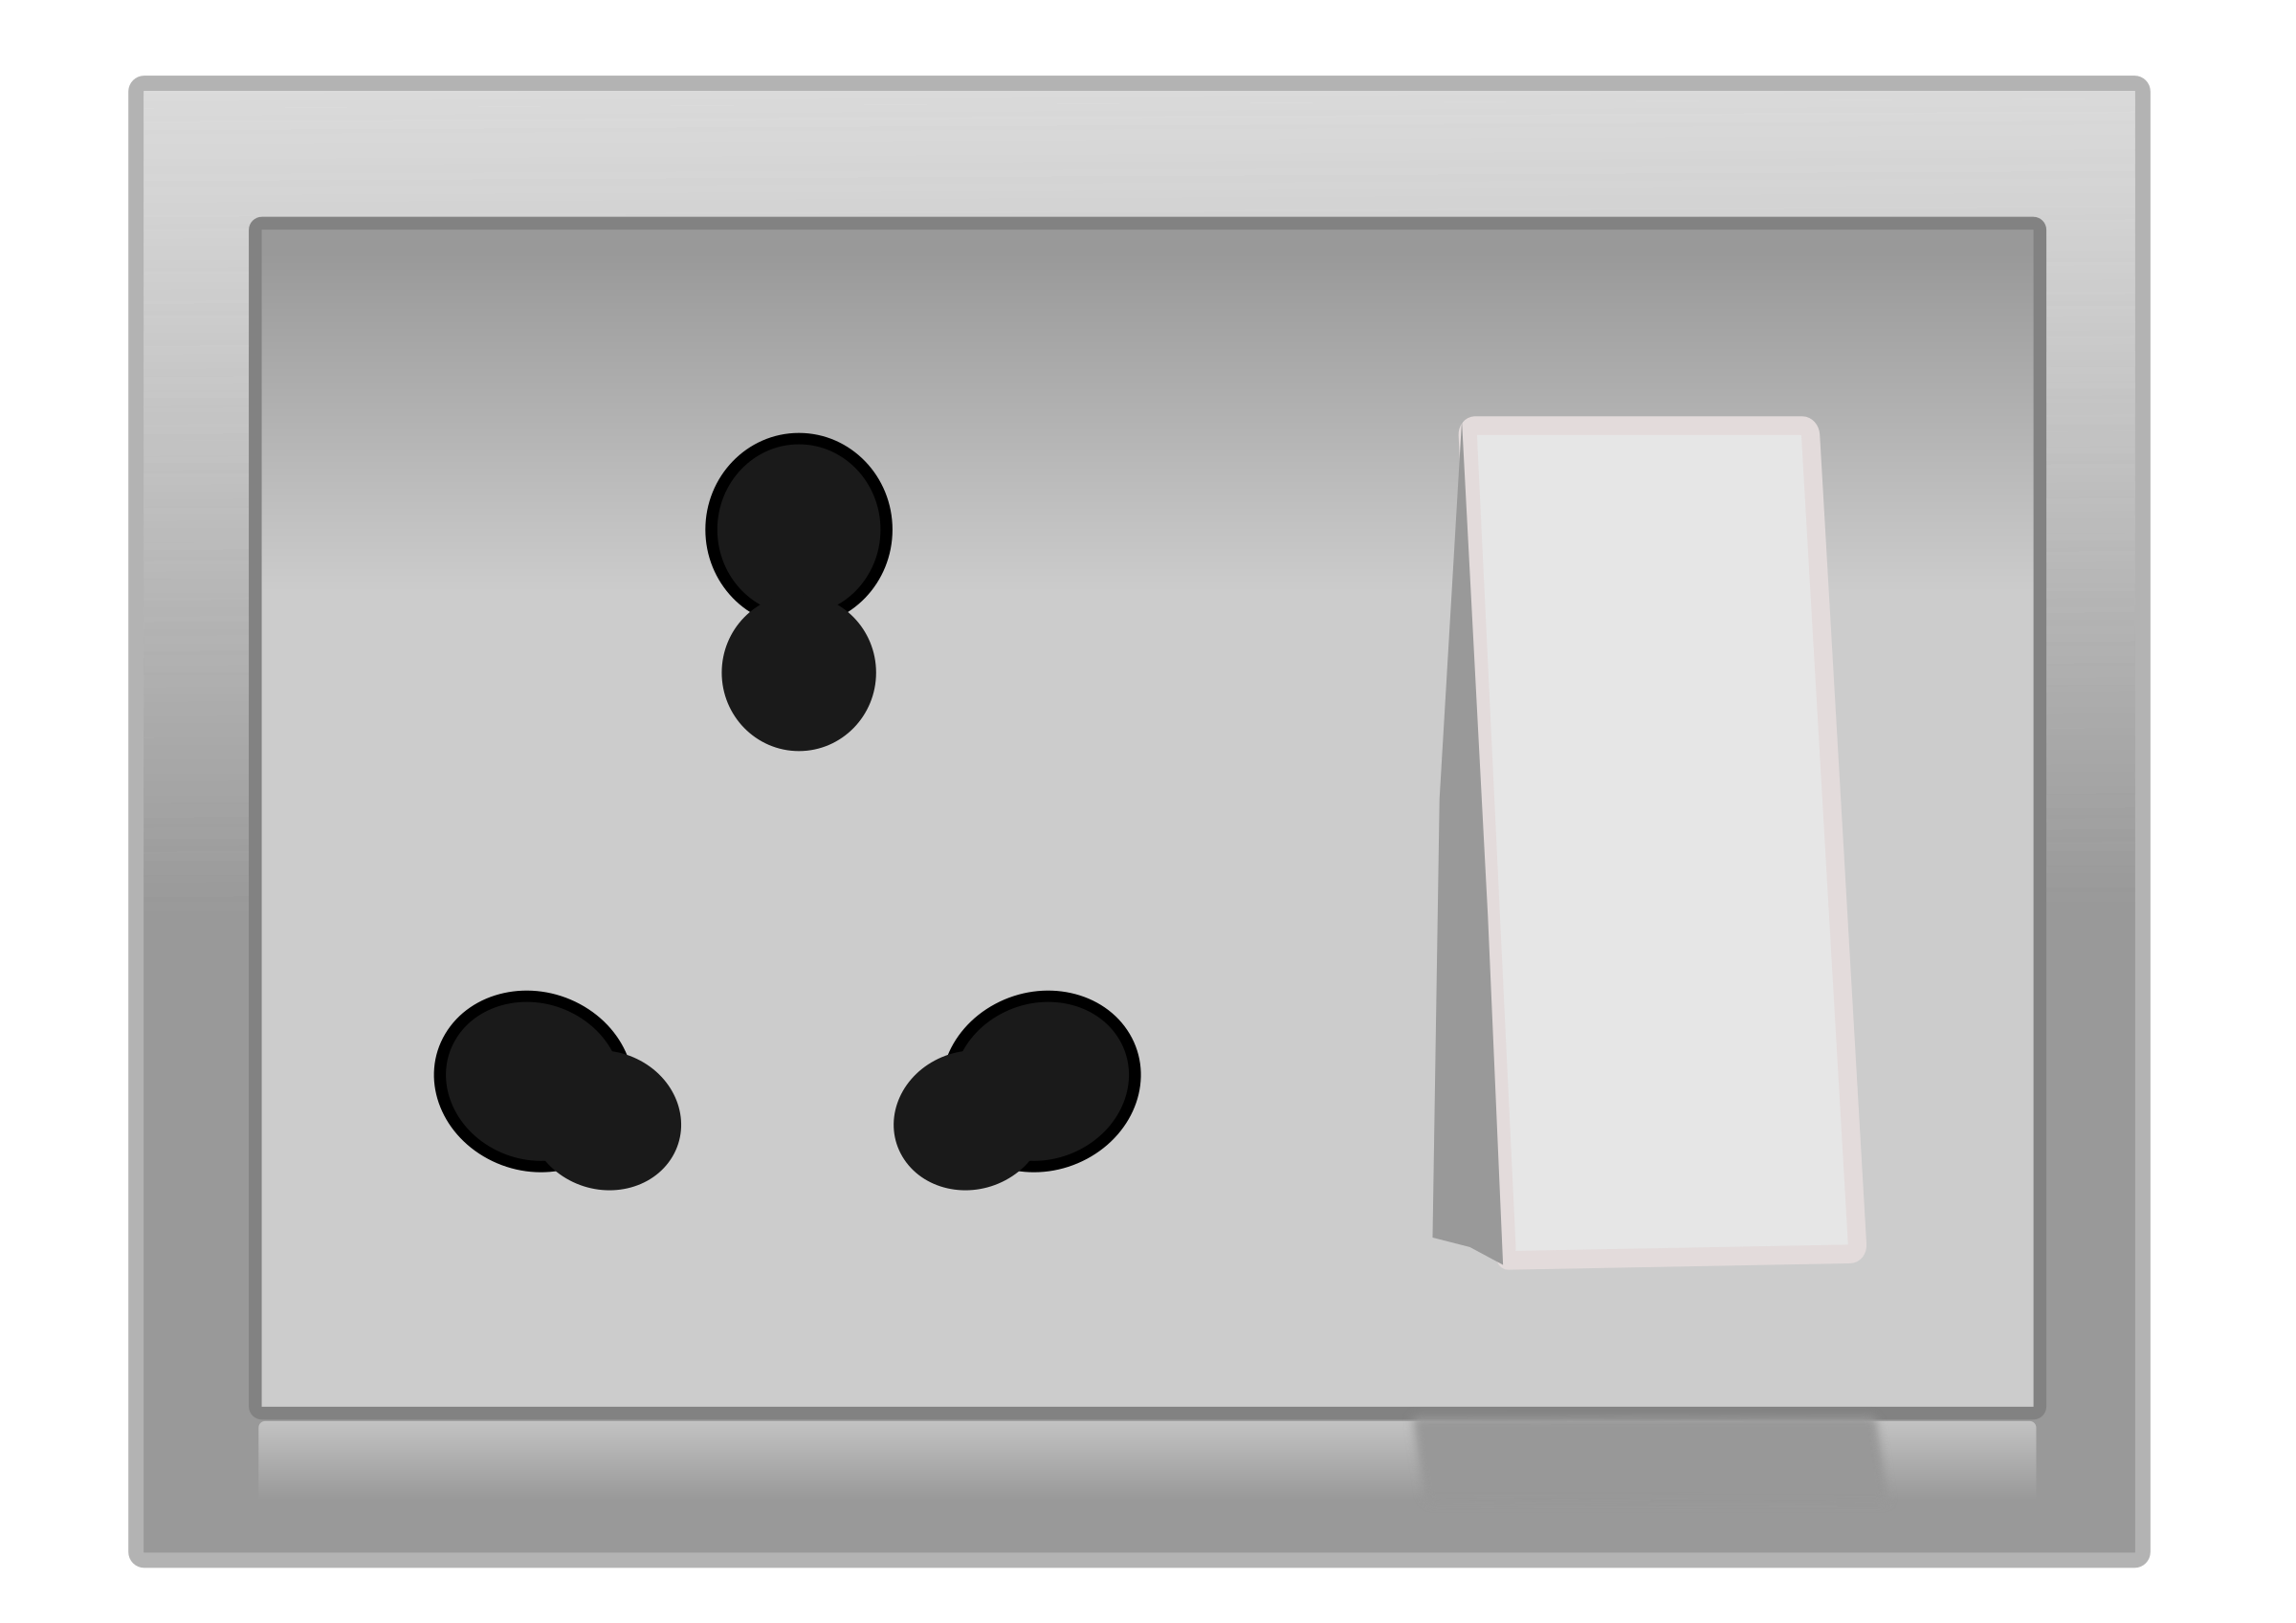 Electricity clipart frame. Switch board icons png